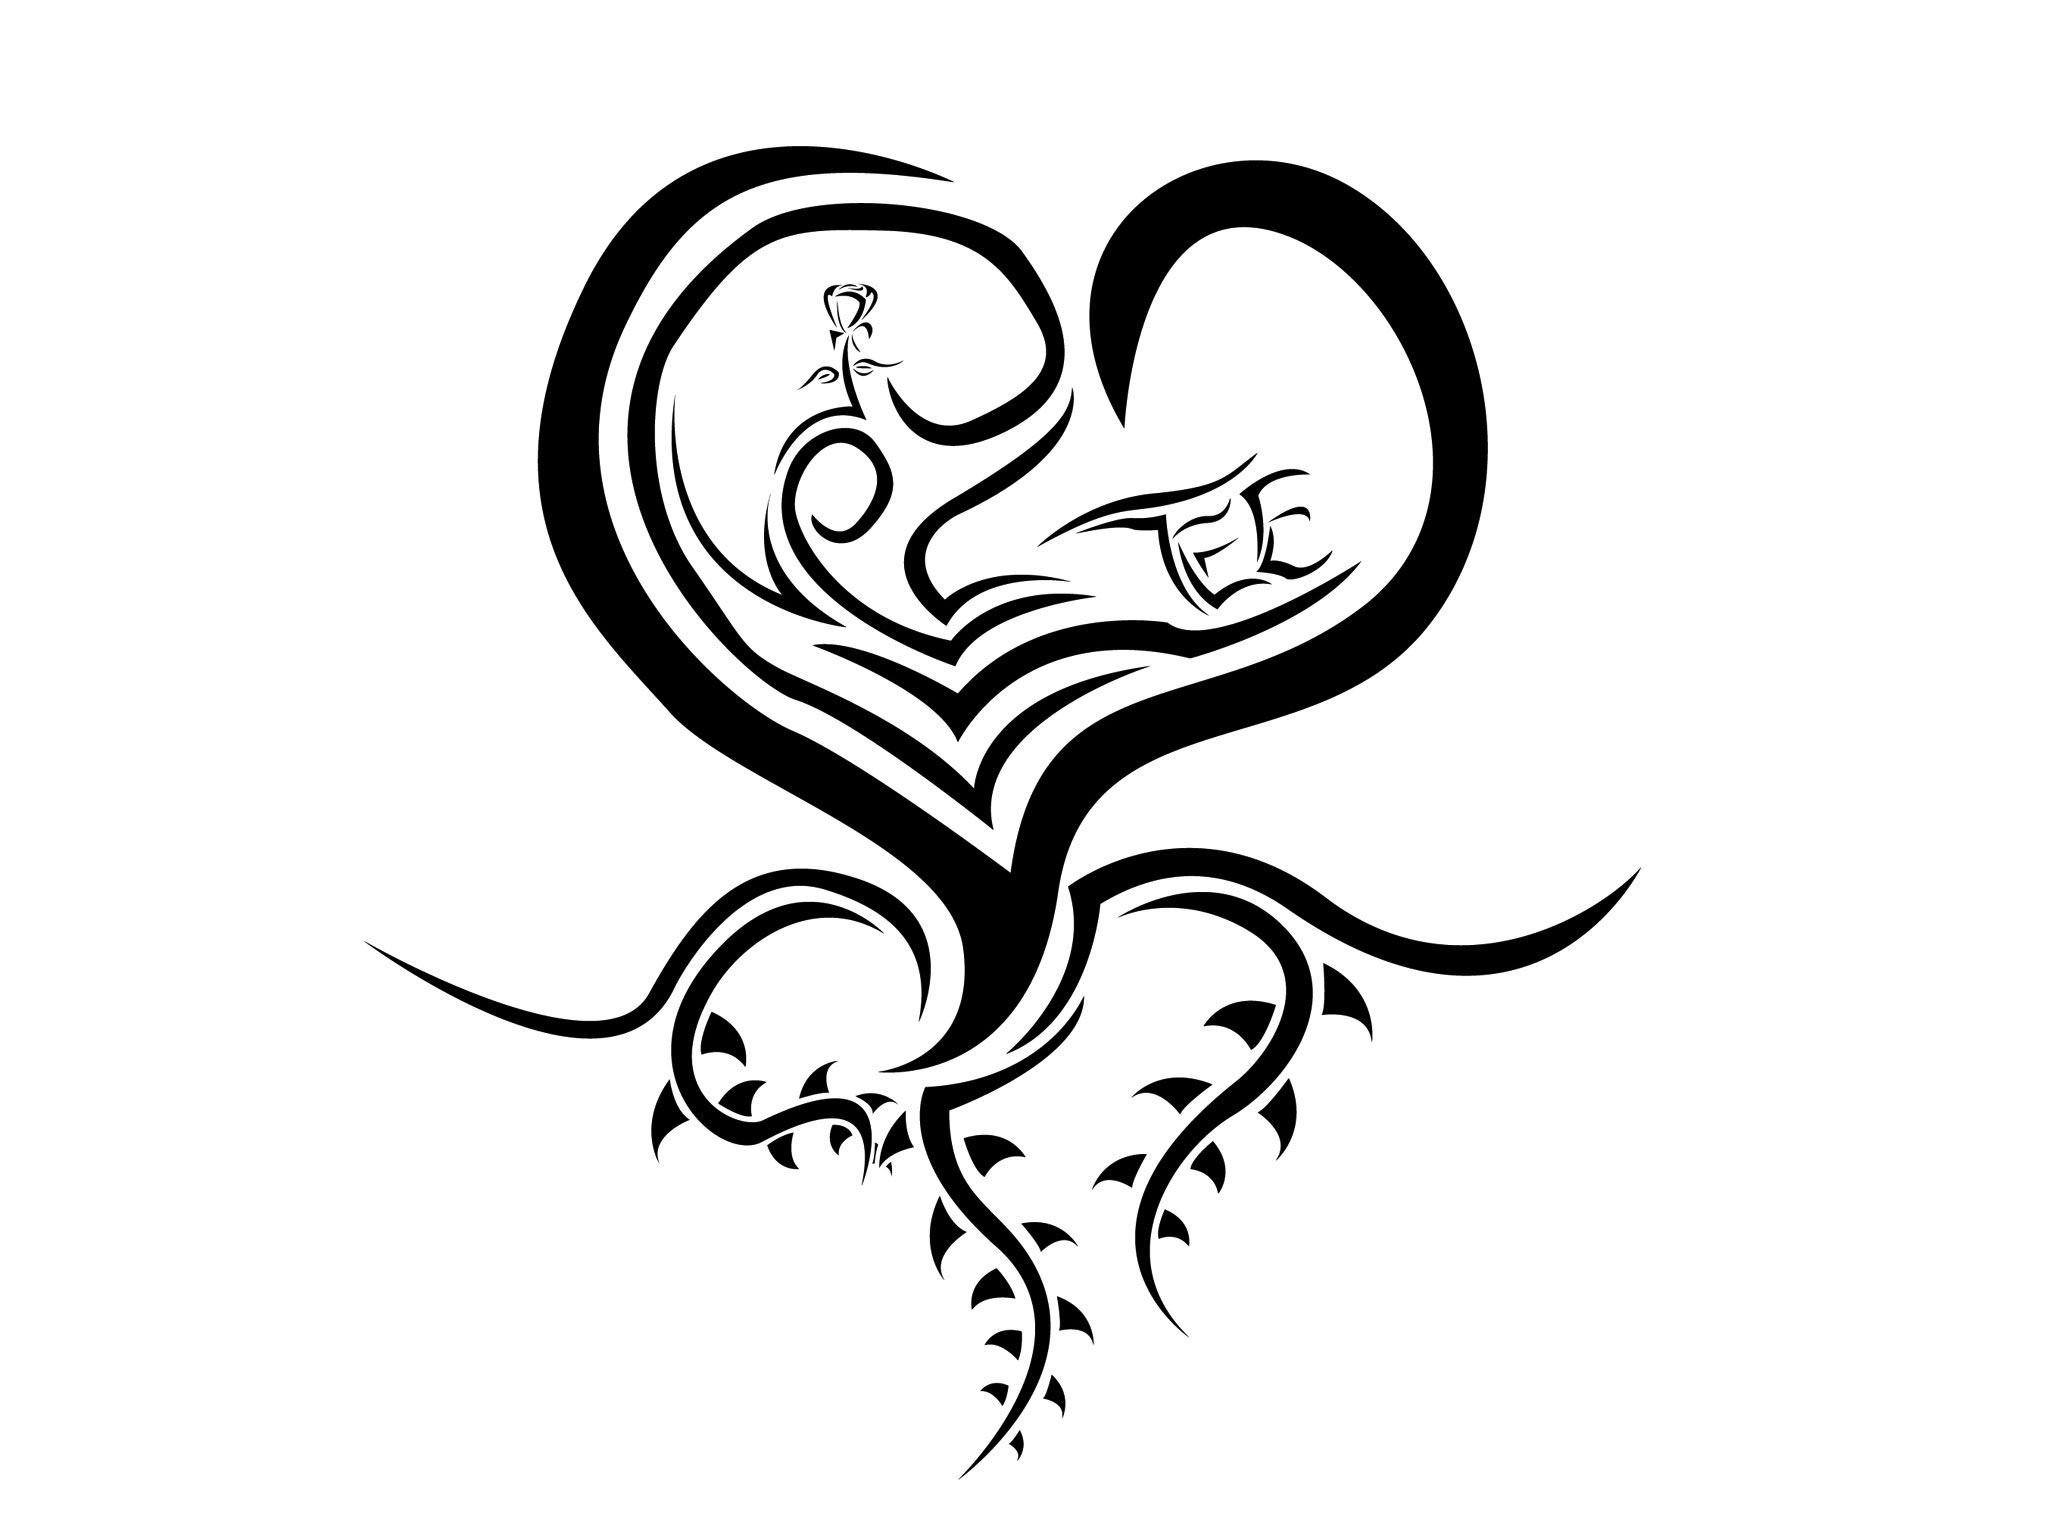 Curved Heart Tattoo Wallpaper X Px Free Download